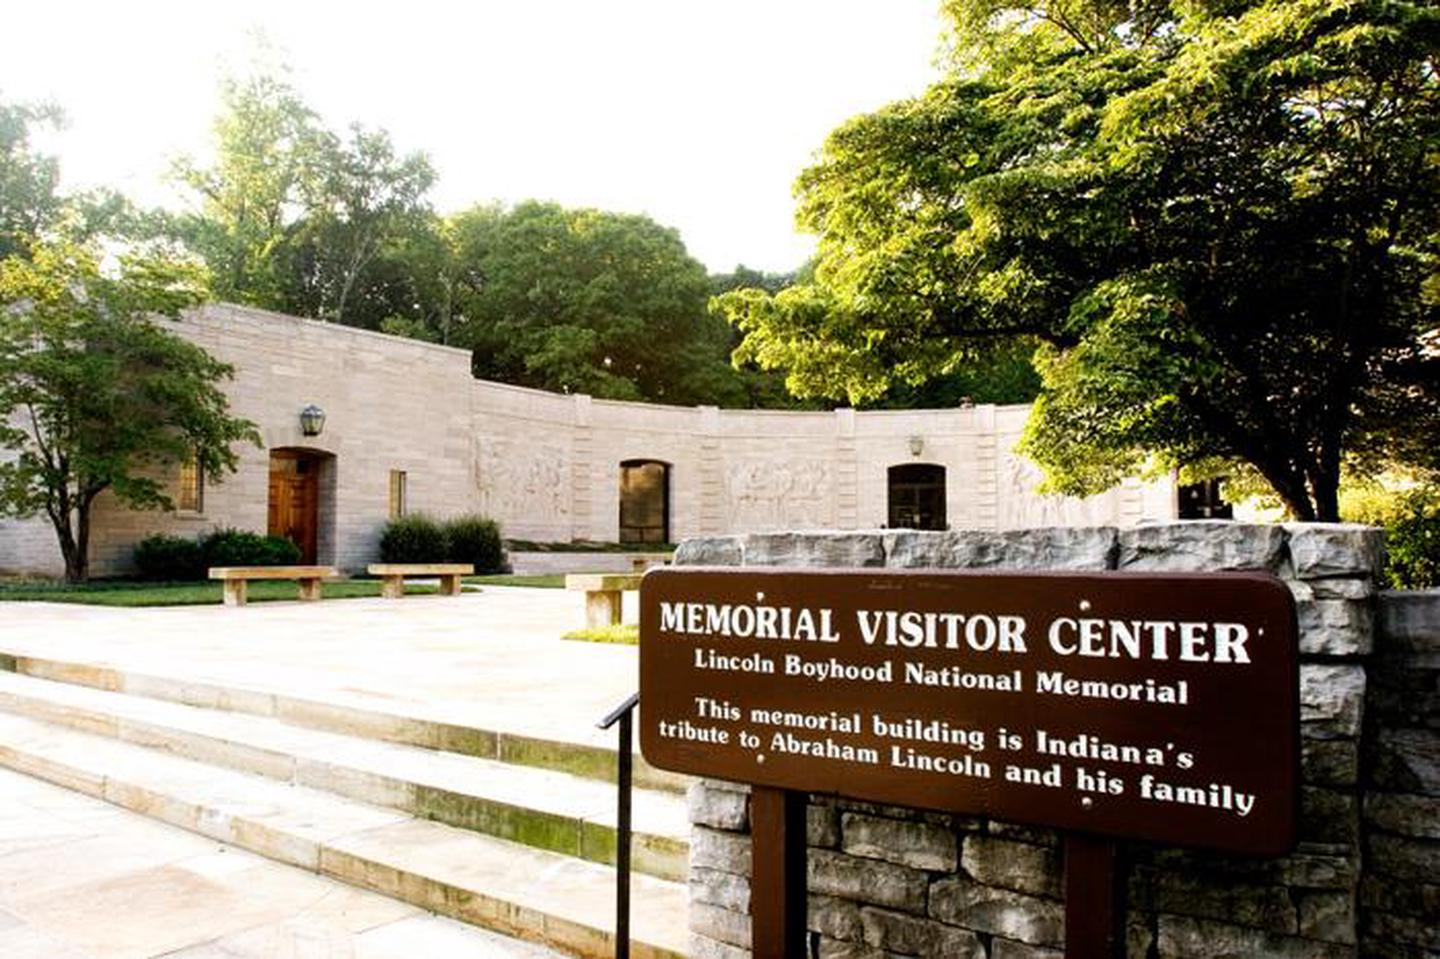 Memorial Visitor CenterMemorial Building contains memorial halls to remember Abraham Lincoln and his family.